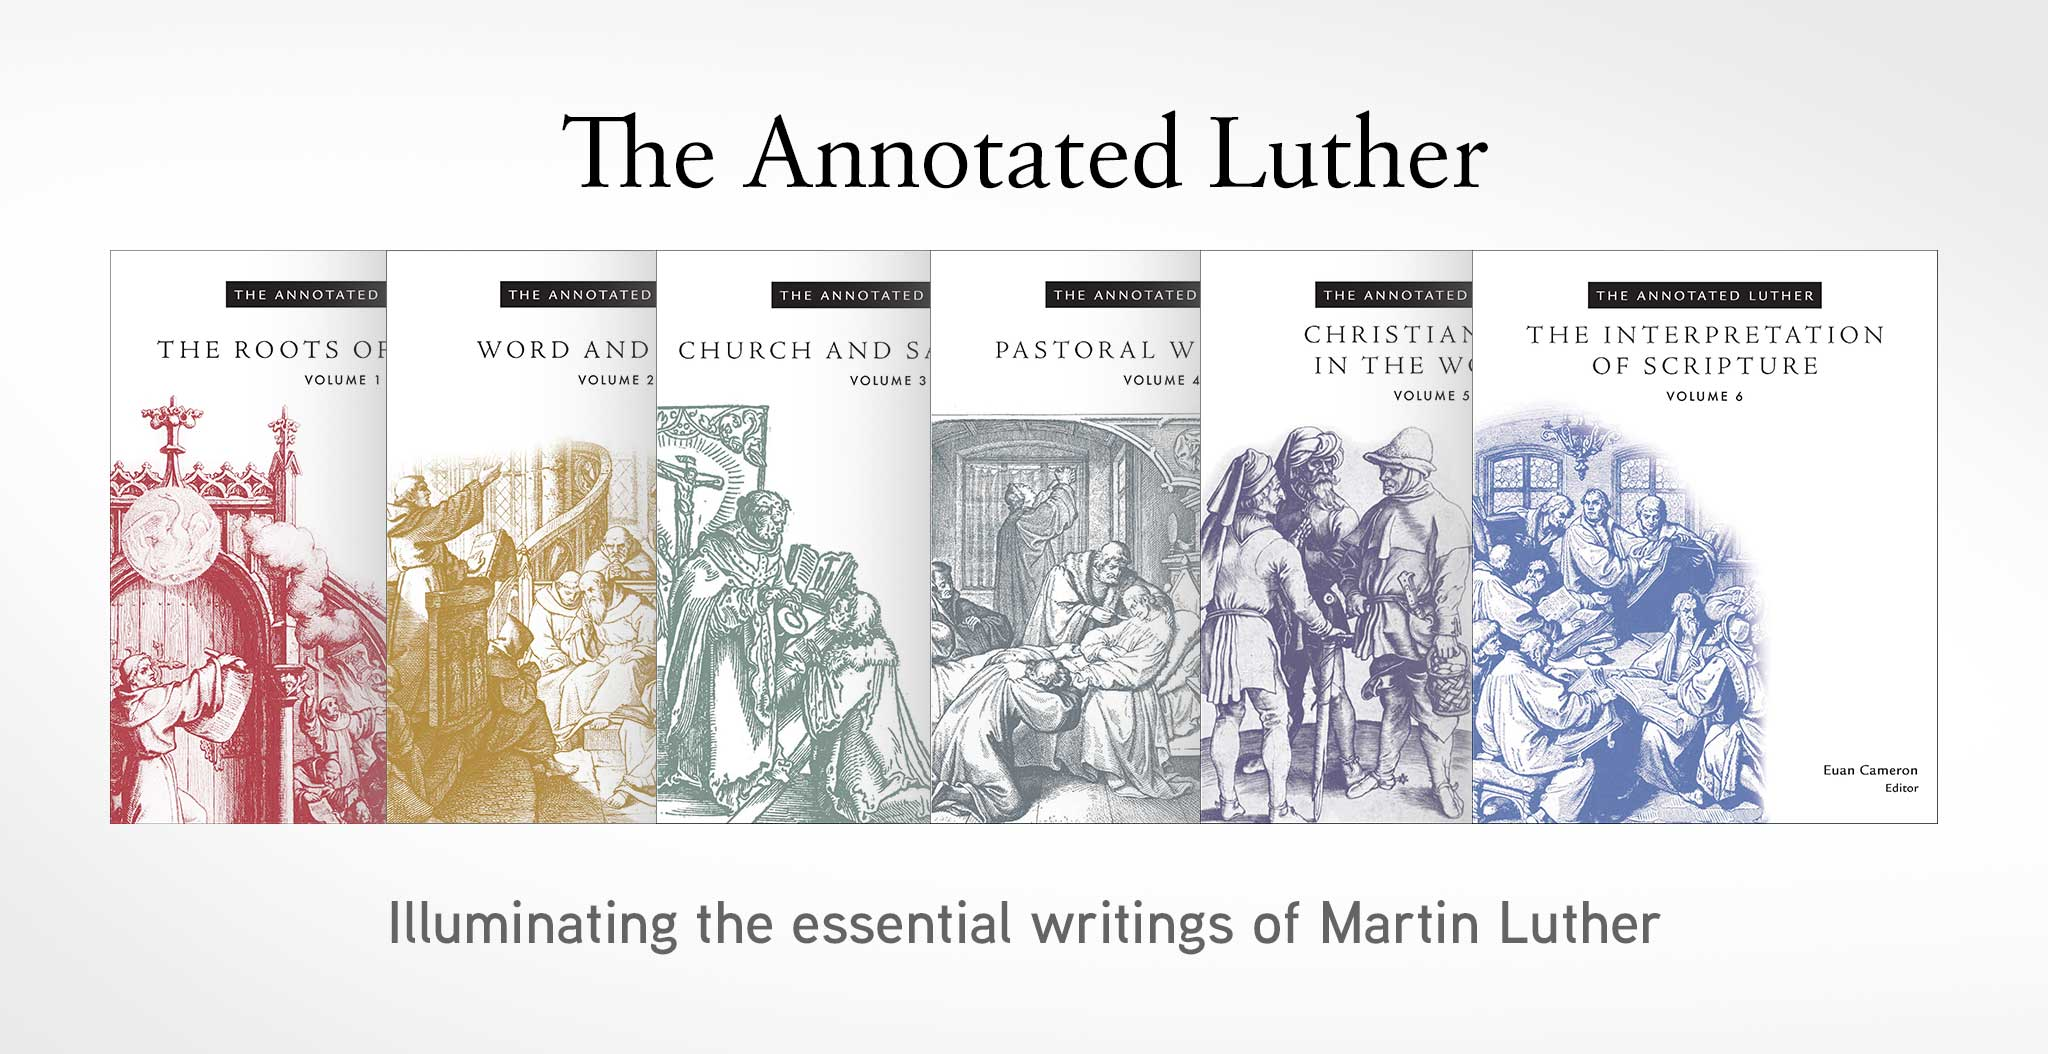 The Annotated Luther series banner image